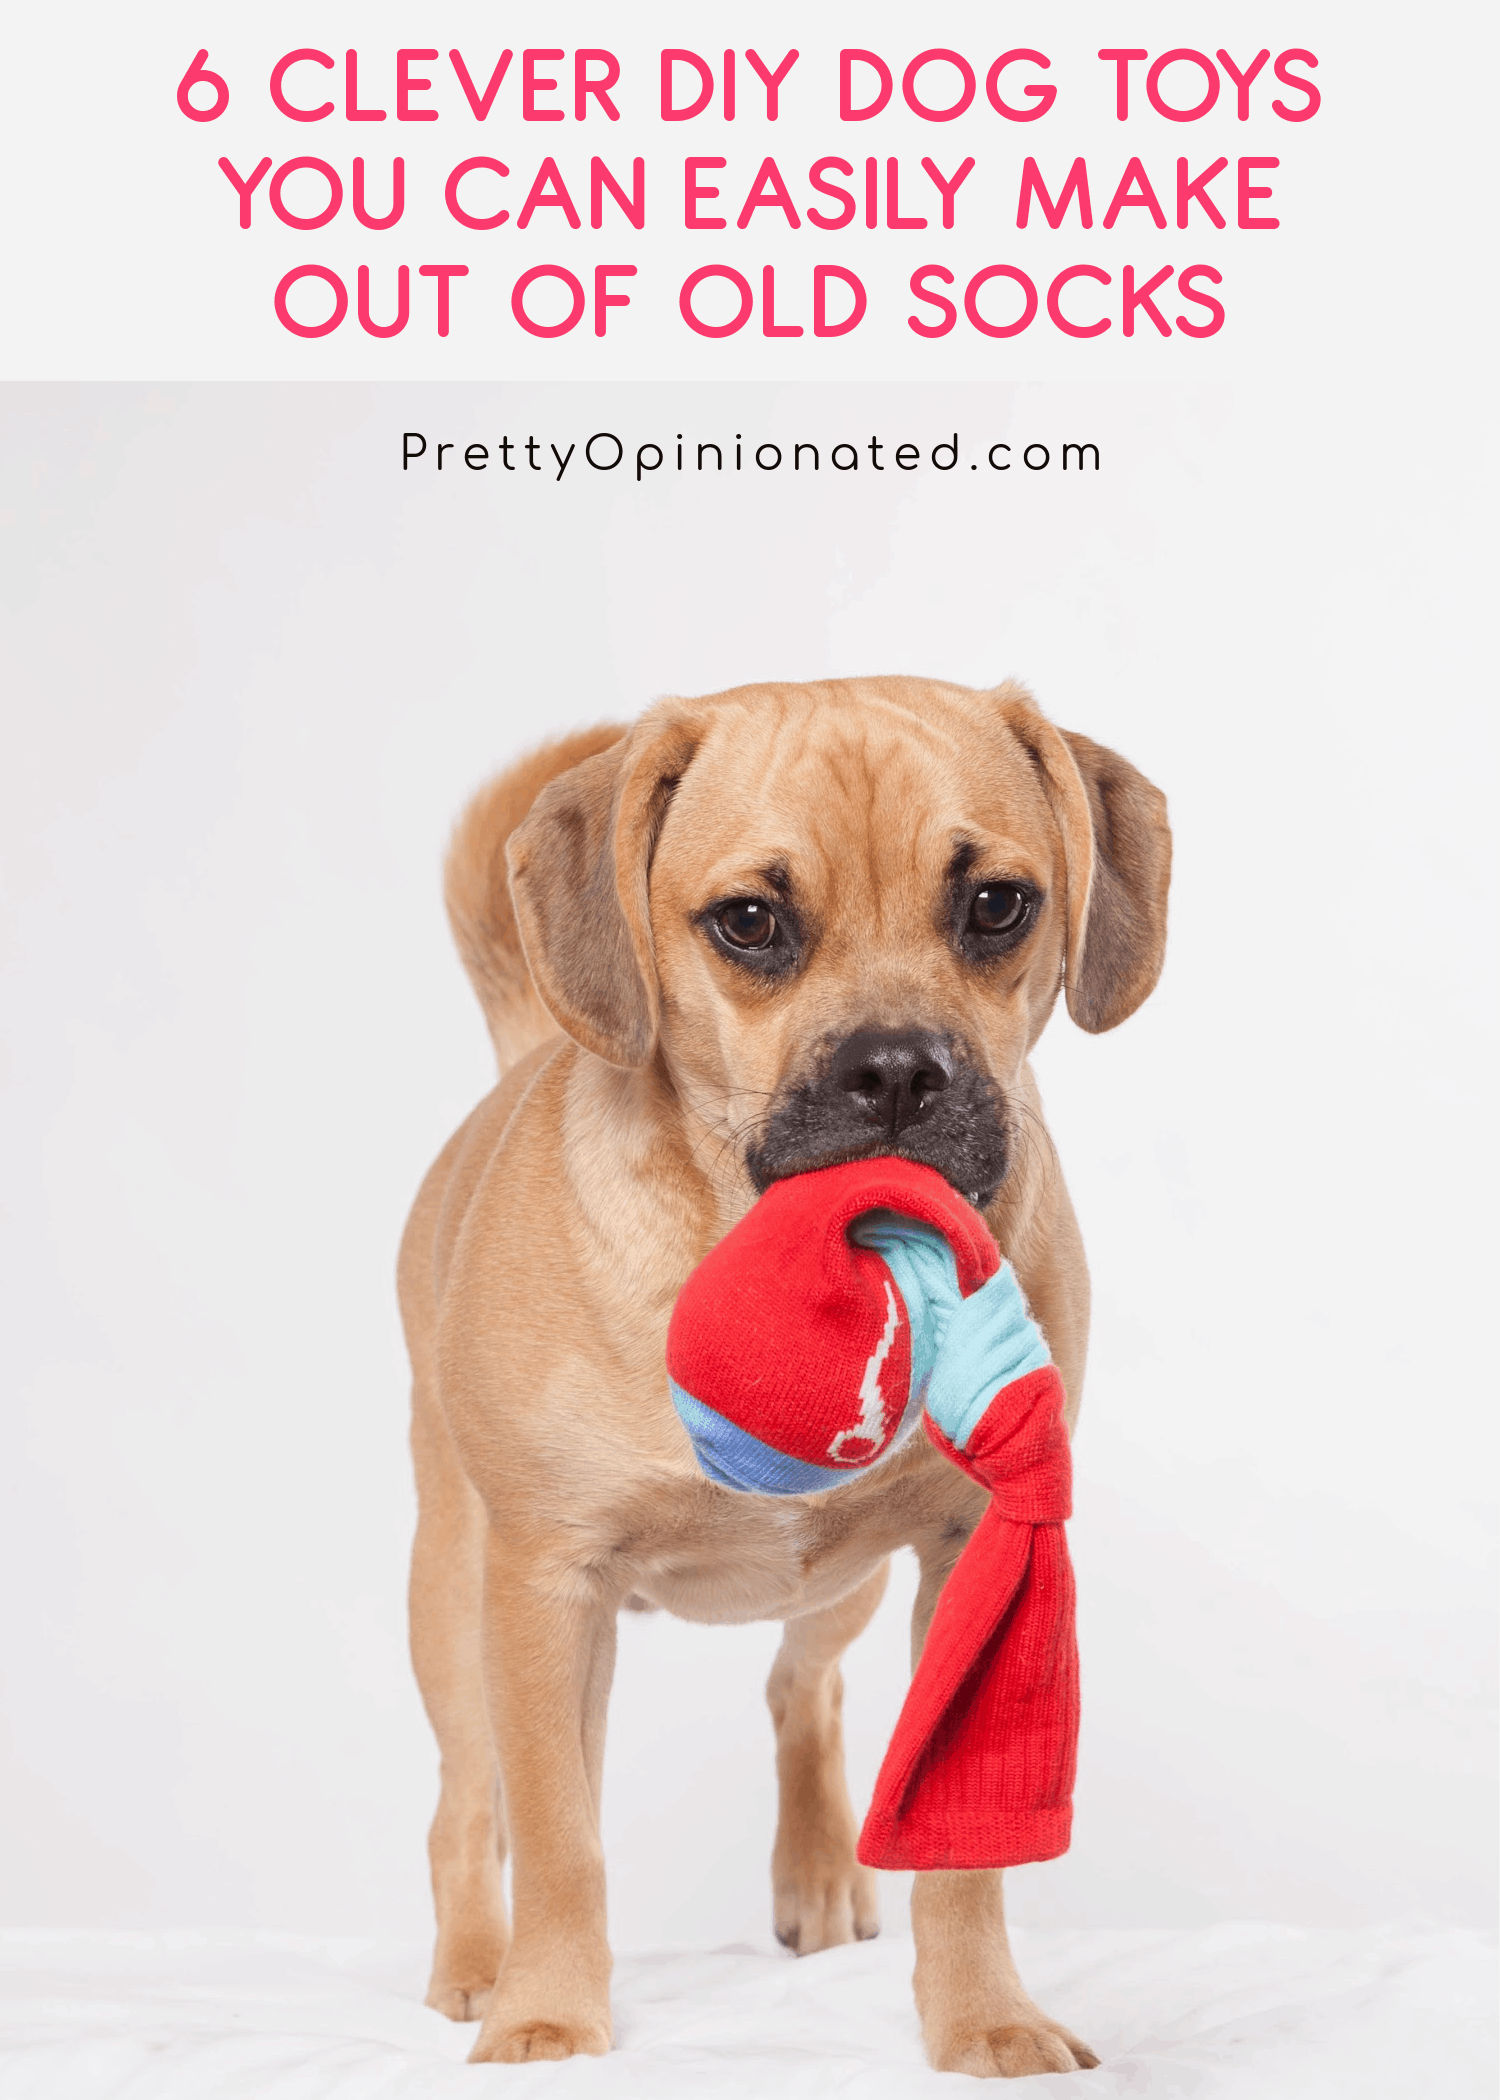 A couple pairs of old socks are basically all you need to DIY some bright, fun playthings for Fido. Check out 6 easy tutorials for homemade dog toys from socks!